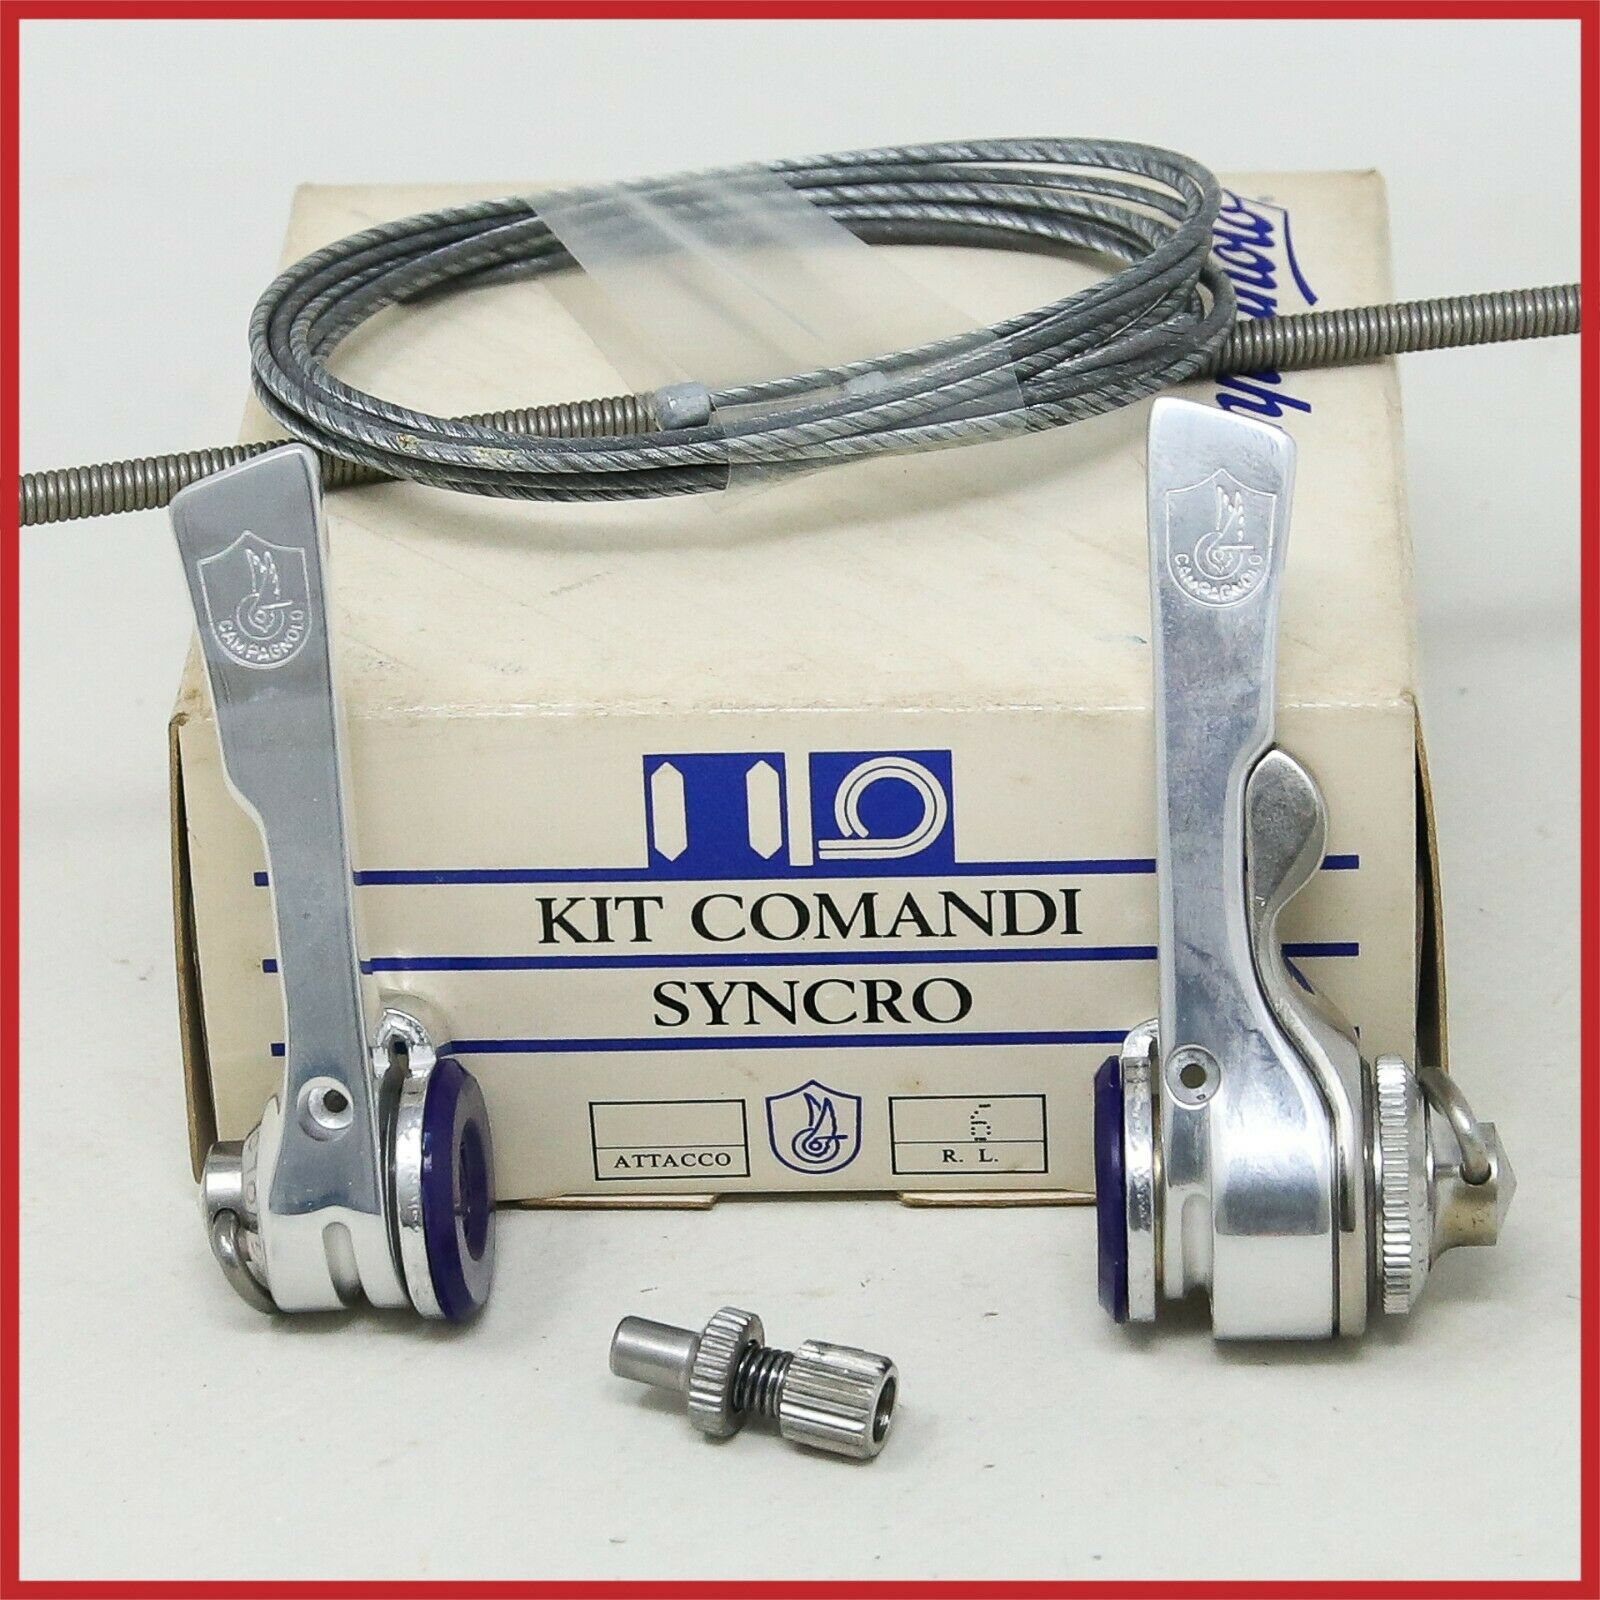 NOS CAMPAGNOLO CRECORD SYNCRO SHIFTERS 6s SPEED VINTAGE DOWNTUBE BRAZEON bicicletta